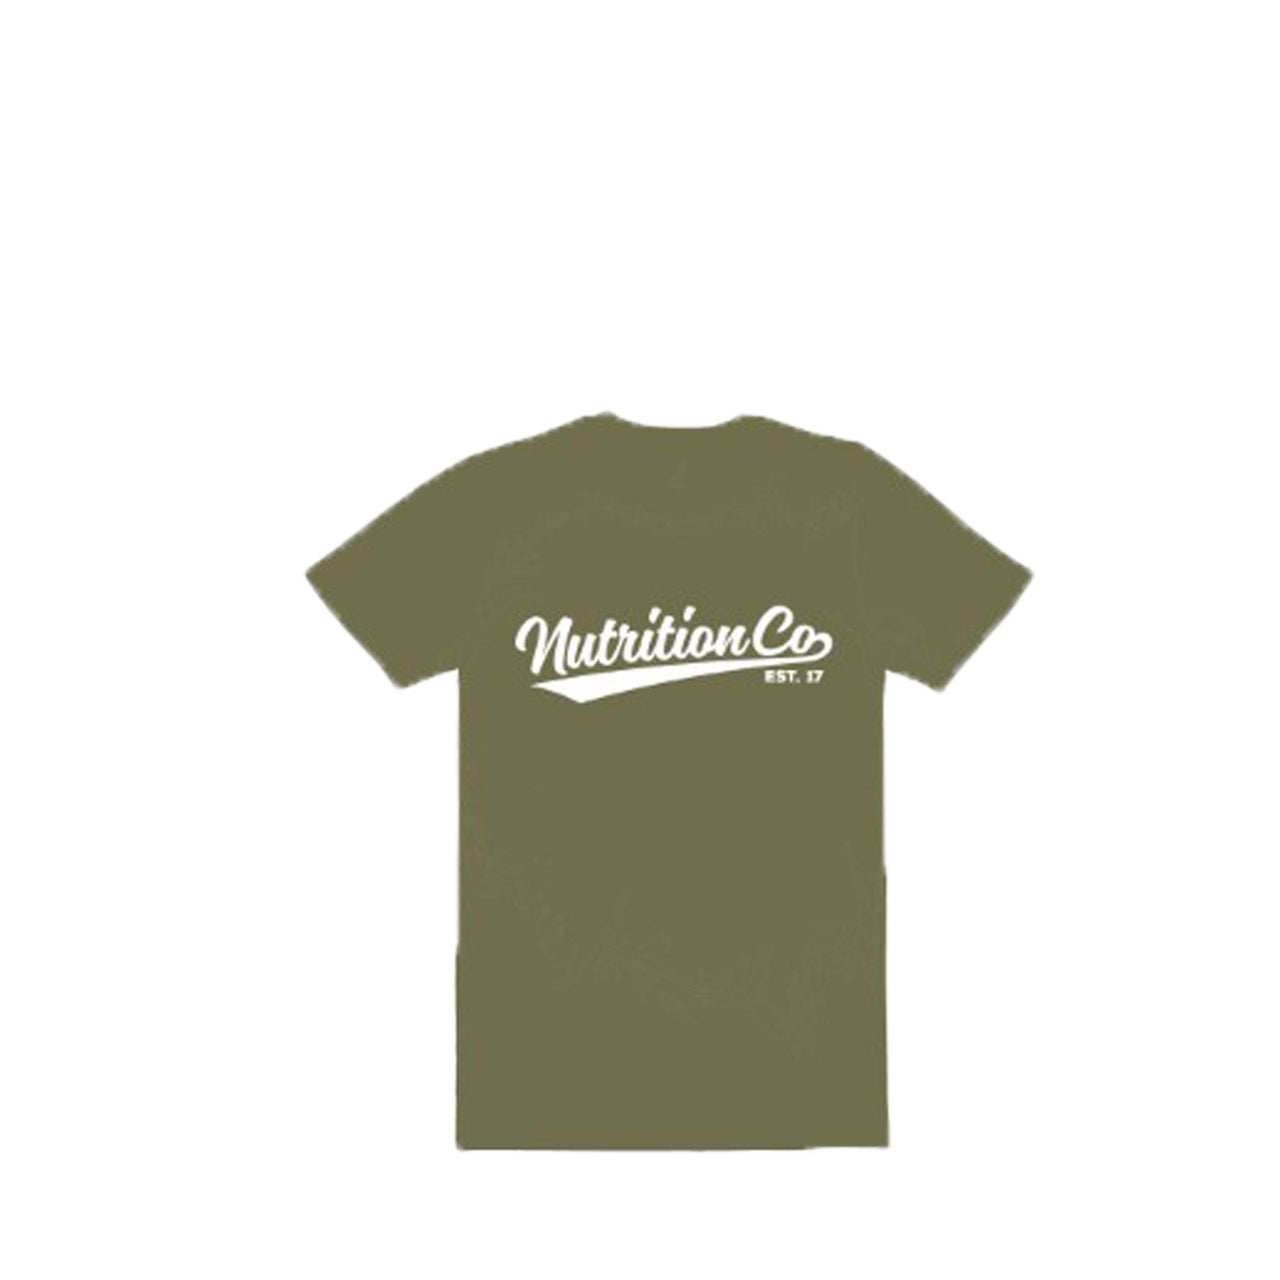 Nutrition Co white Baller Army Marle Tee